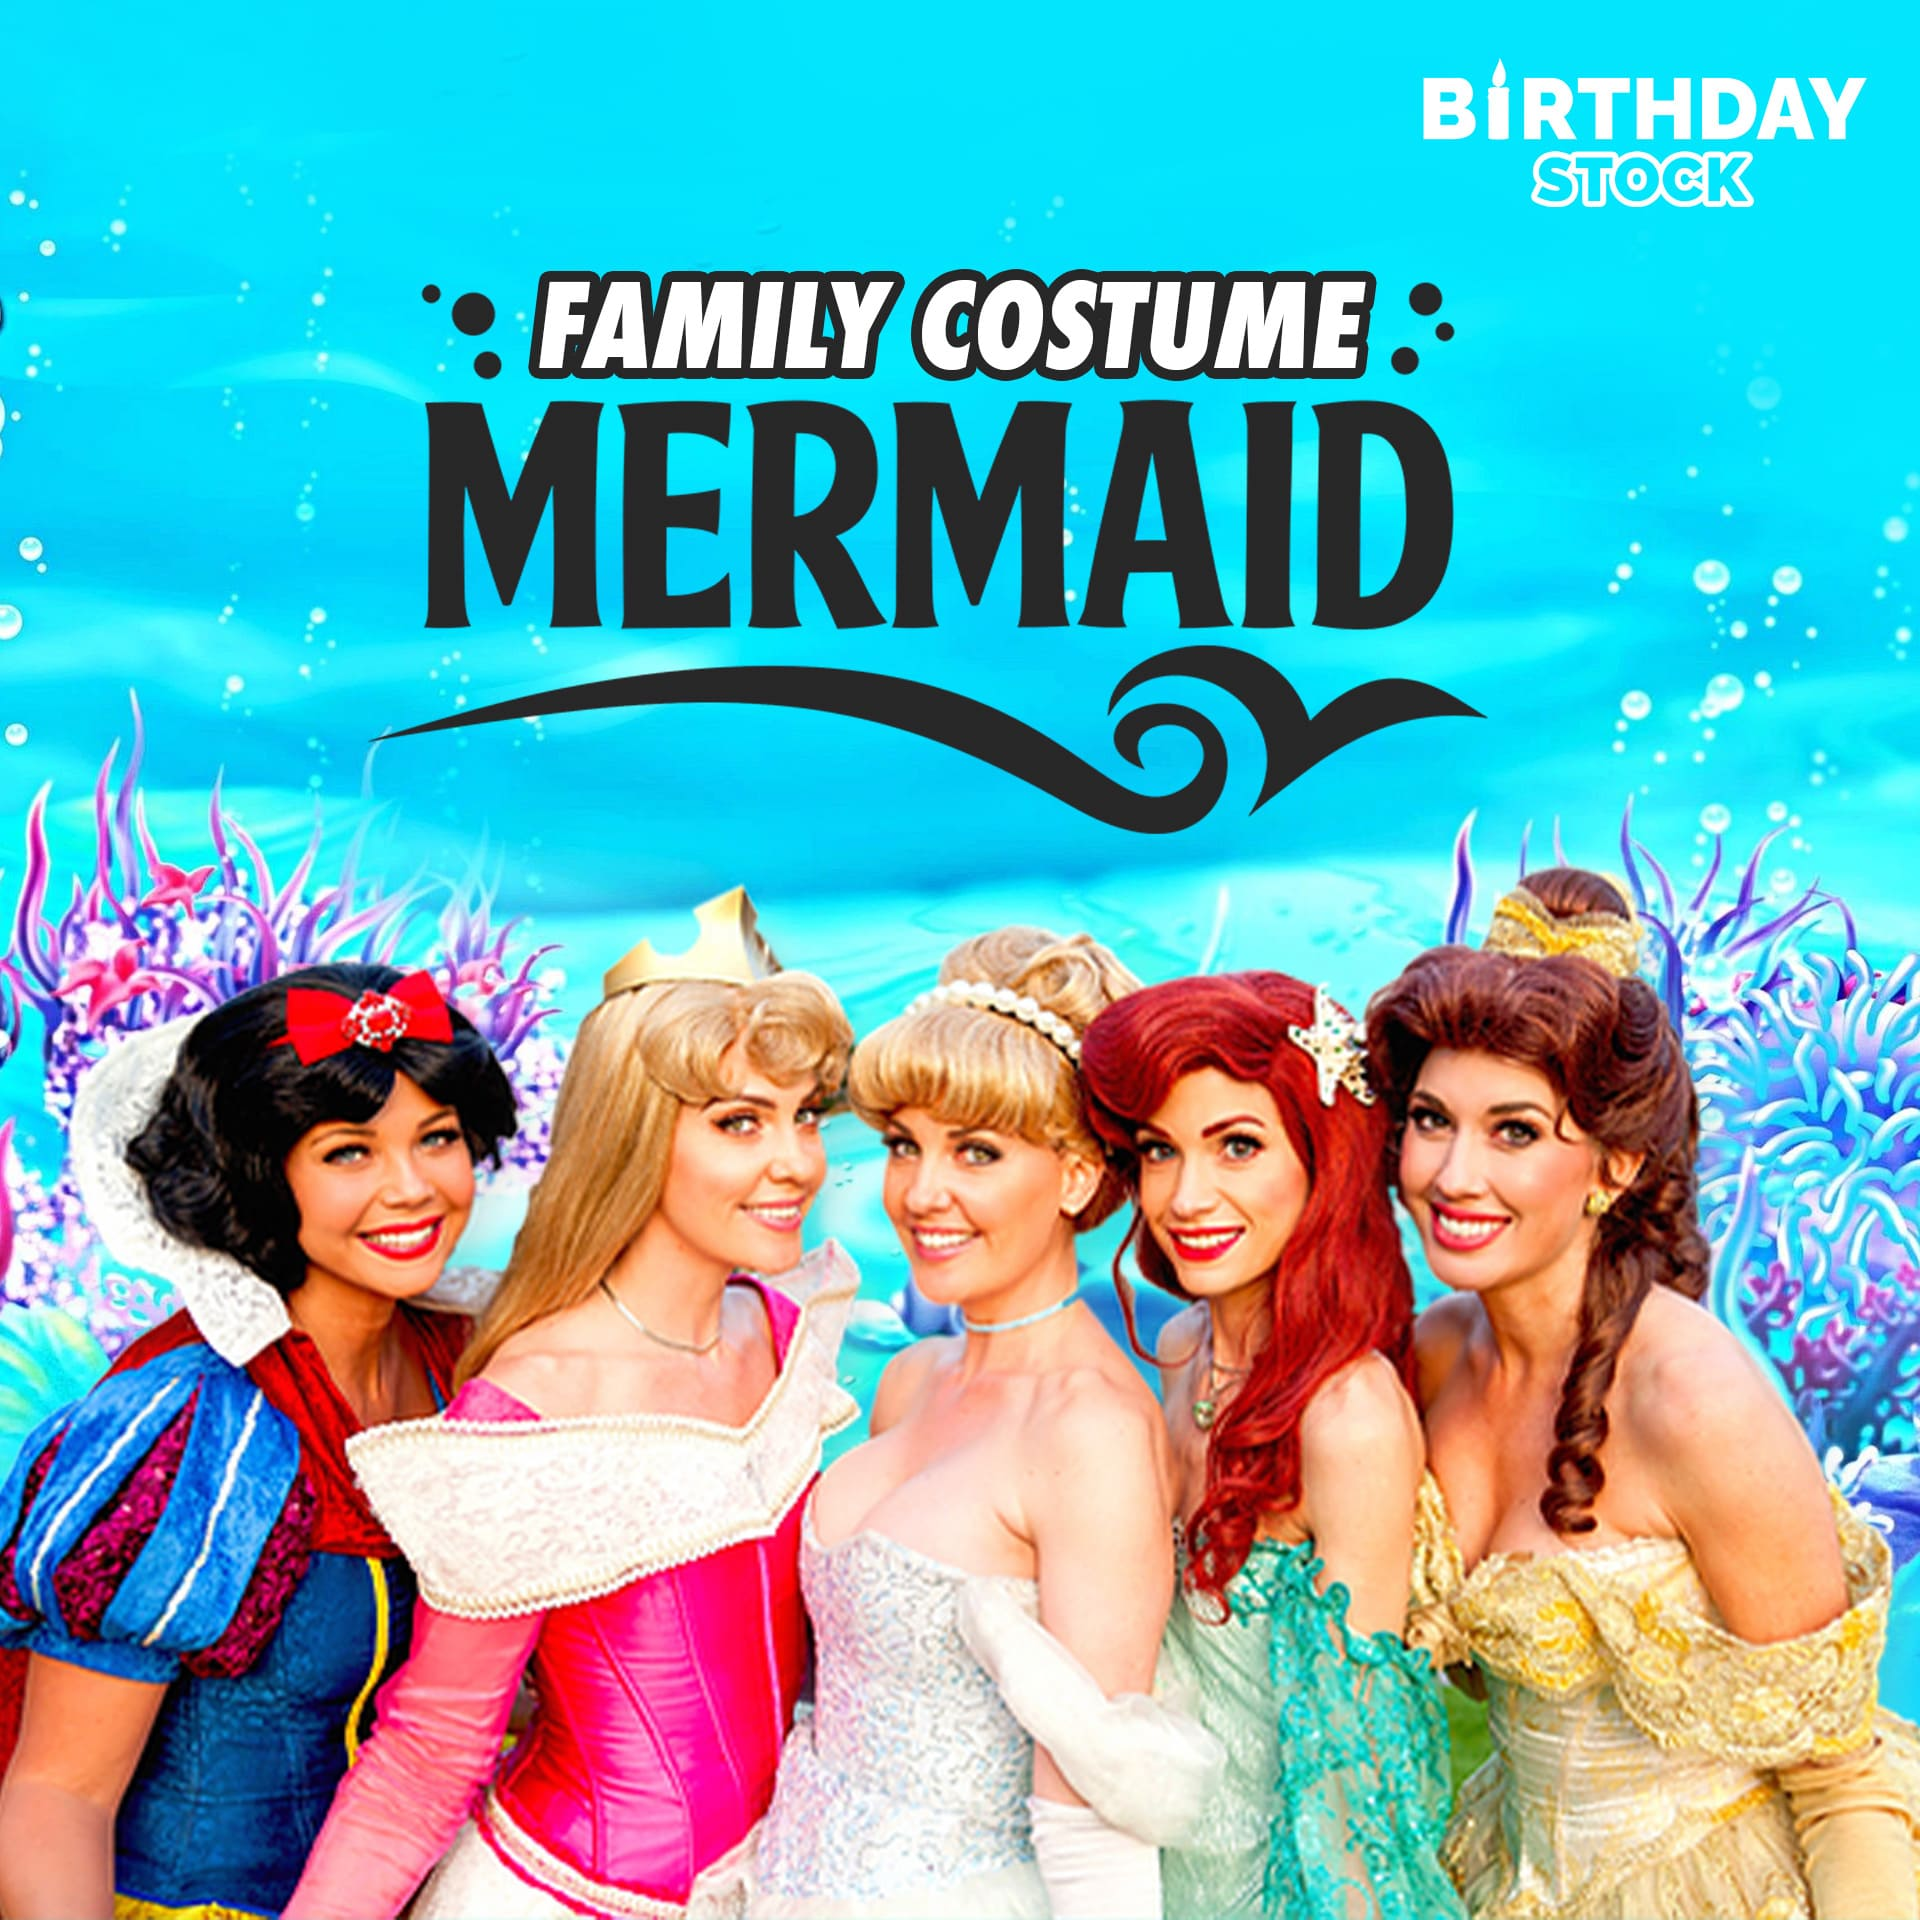 mermaid costumes for family, kids, dogs